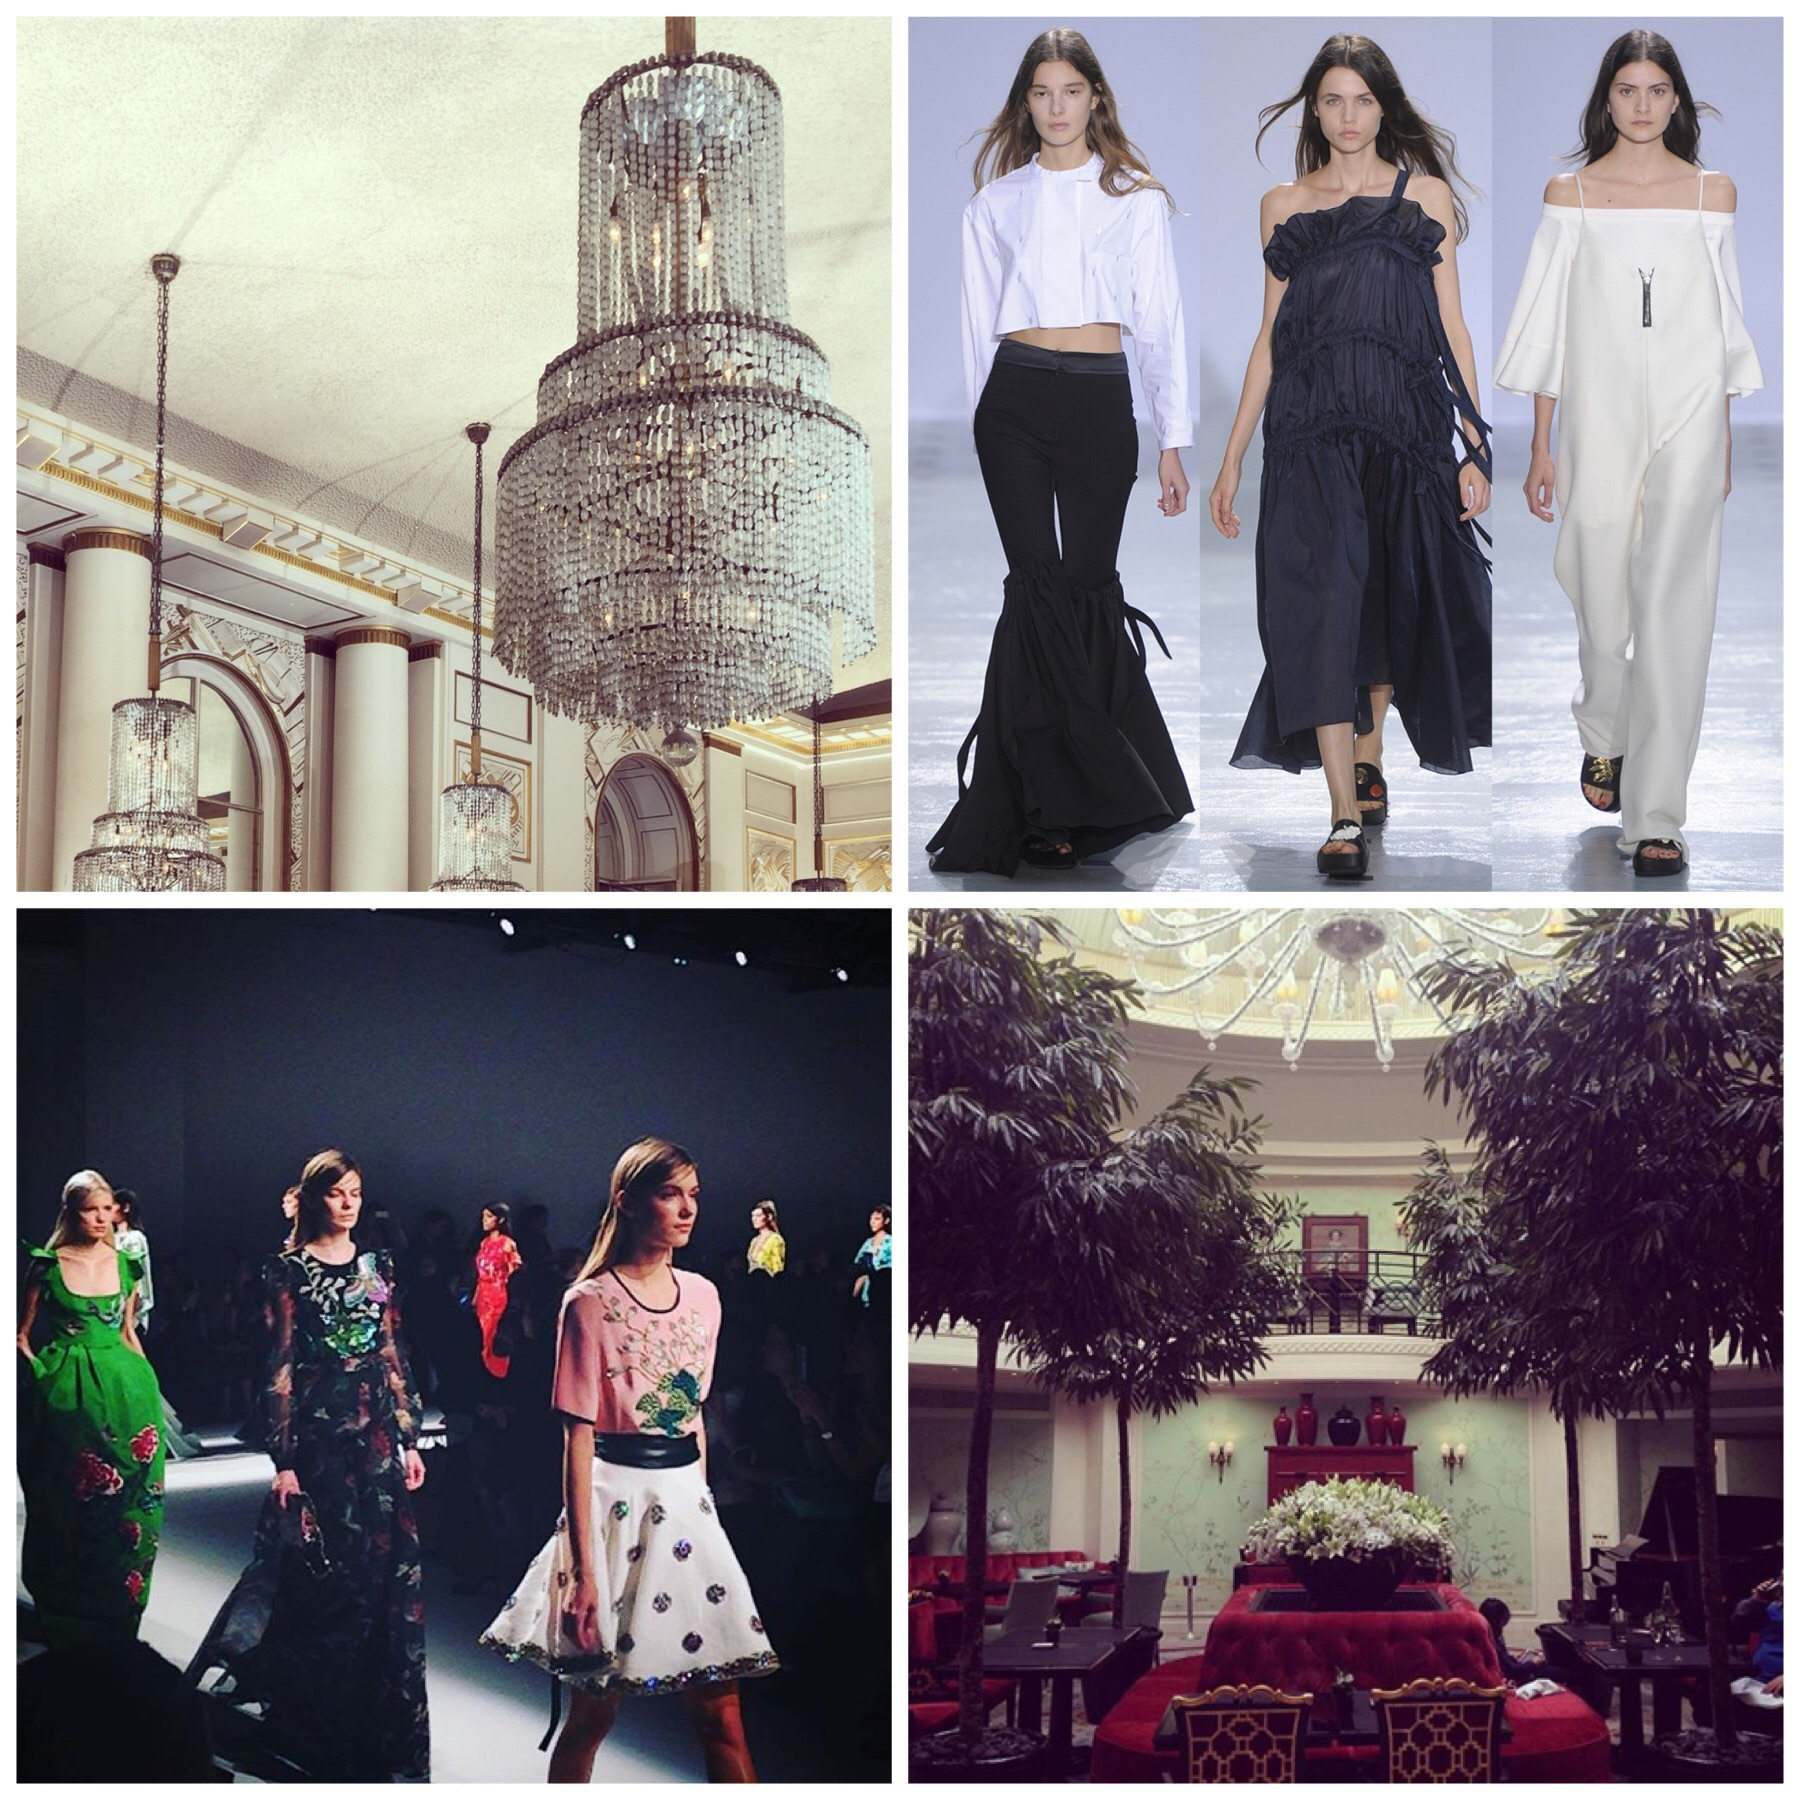 Chandeliers at Roland Mouret, Ellery does black & white best, beautiful florals at Andrew Gn, tea at the Shangri-La Hotel.